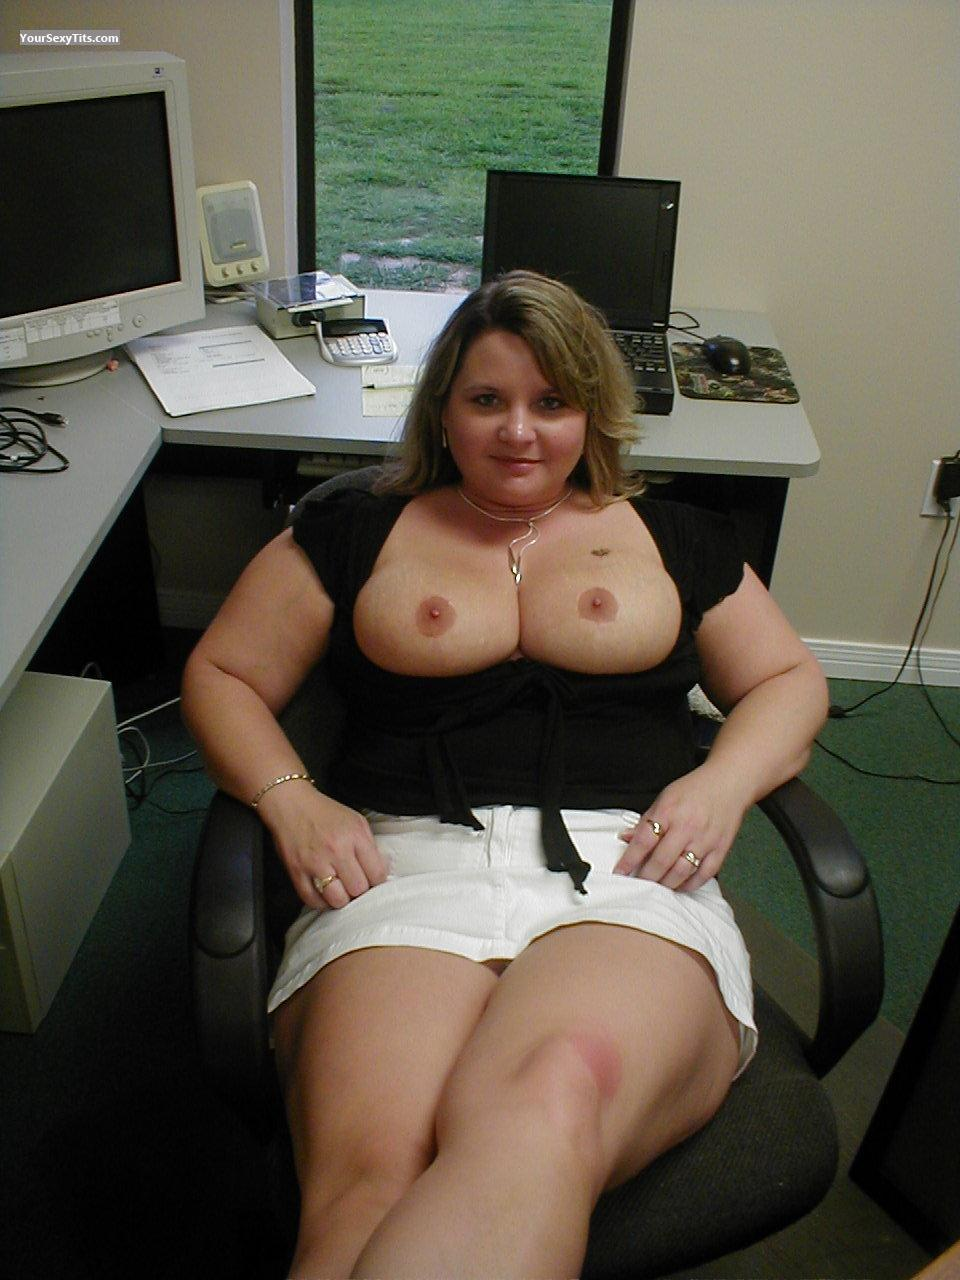 Big tits at work com